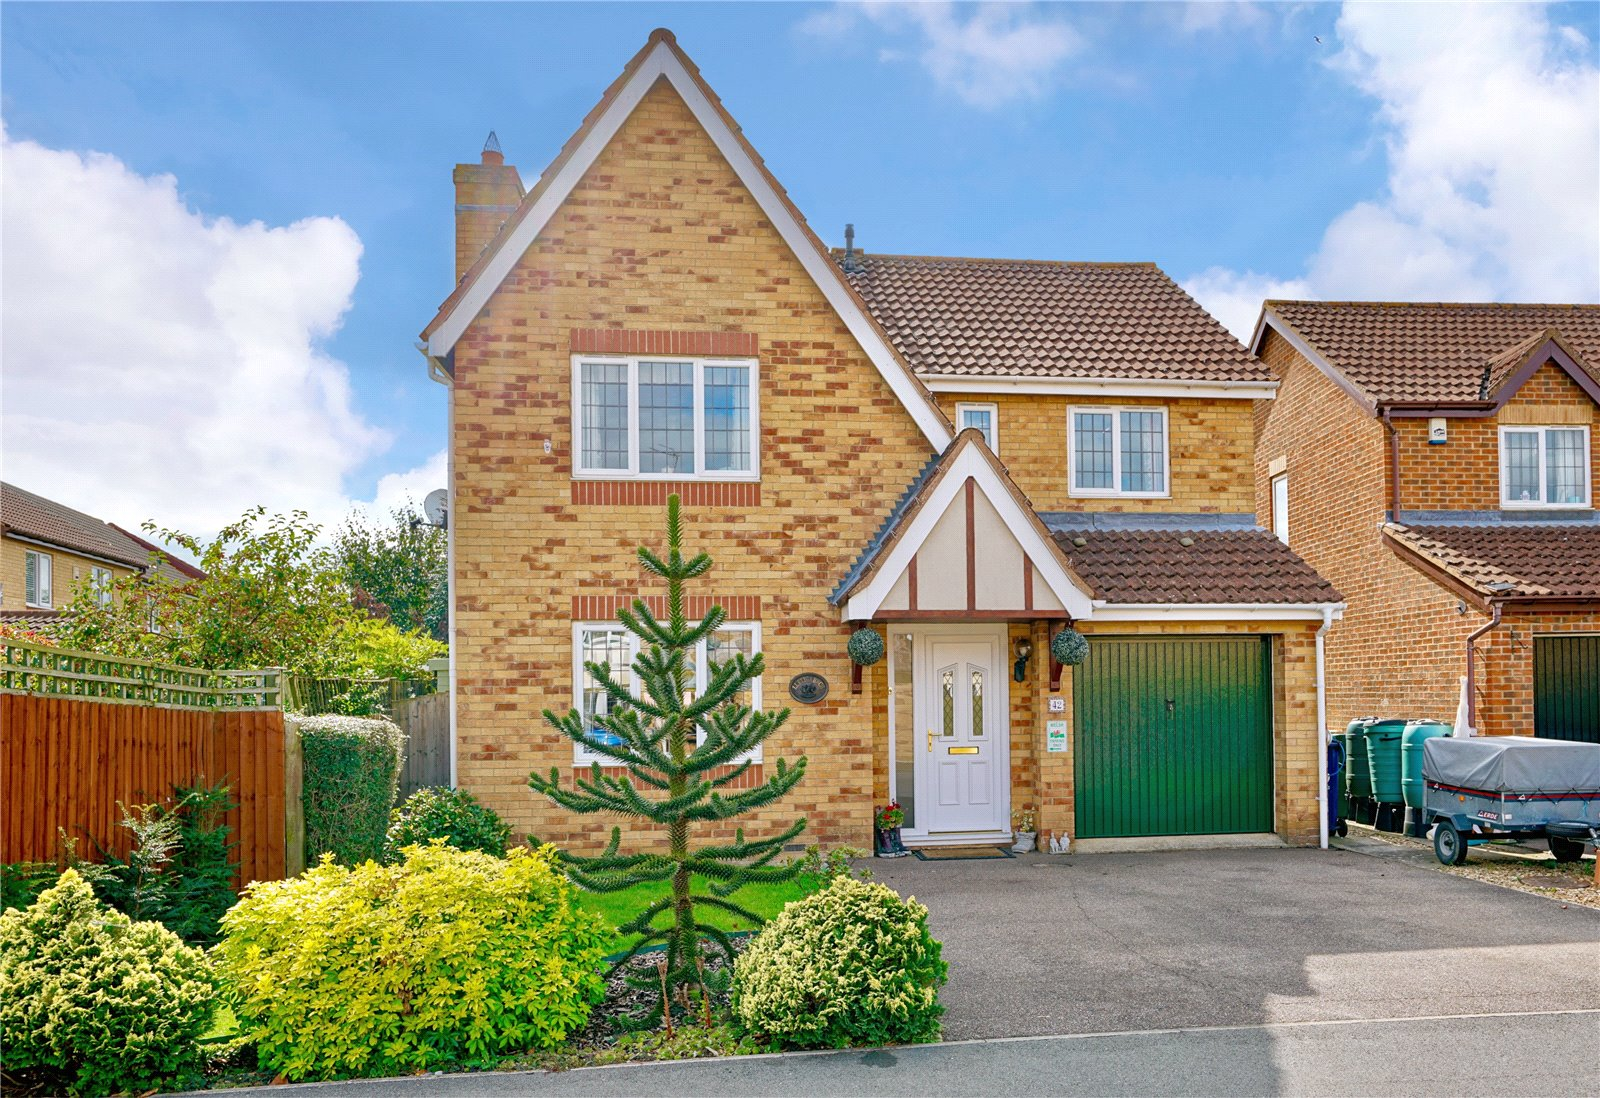 4 bed house for sale in St. Neots, PE19 1LR, PE19